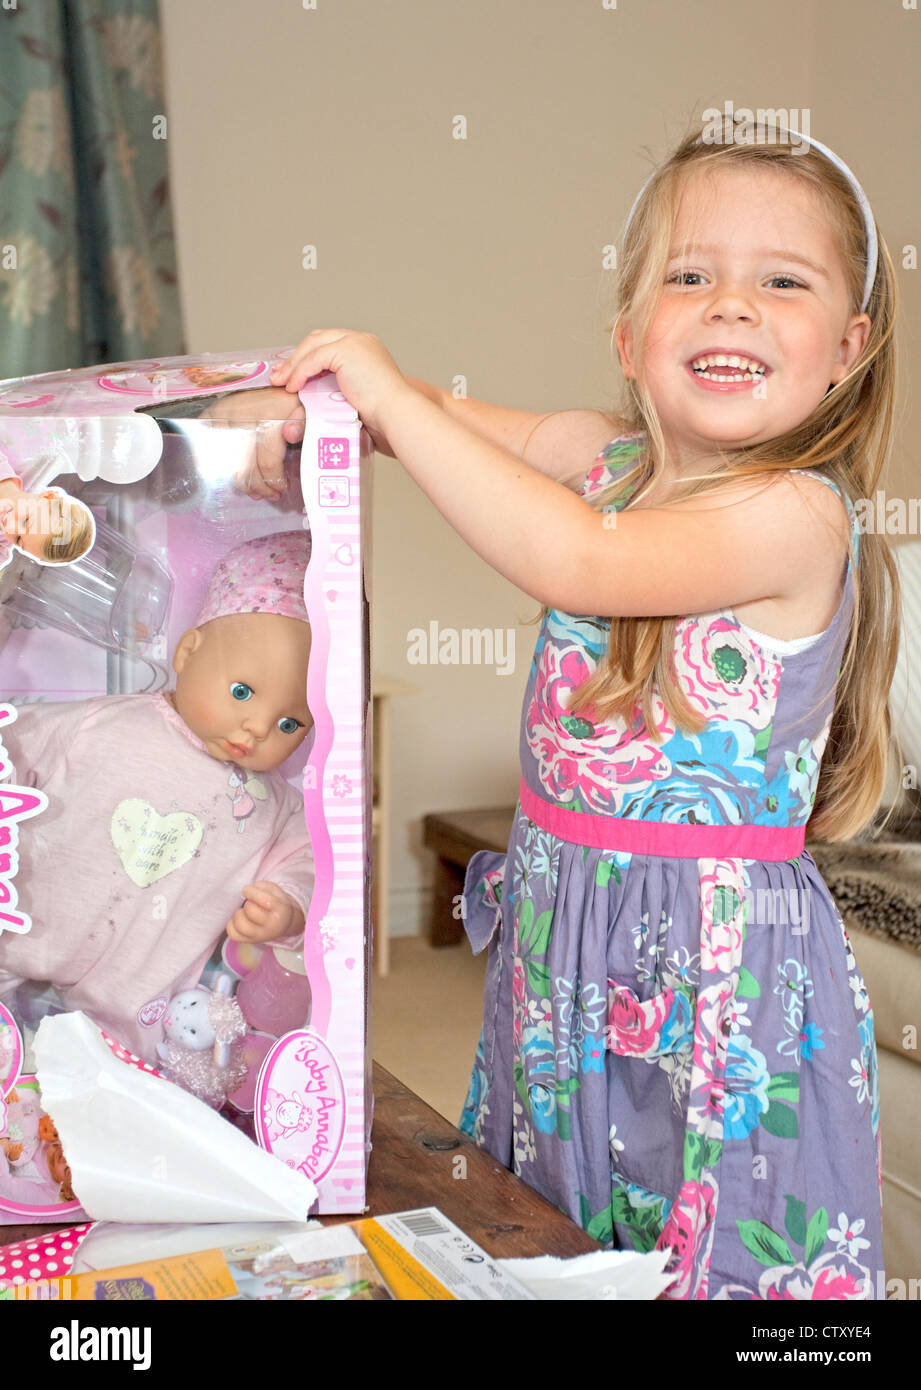 happy child with new toy doll - Stock Image